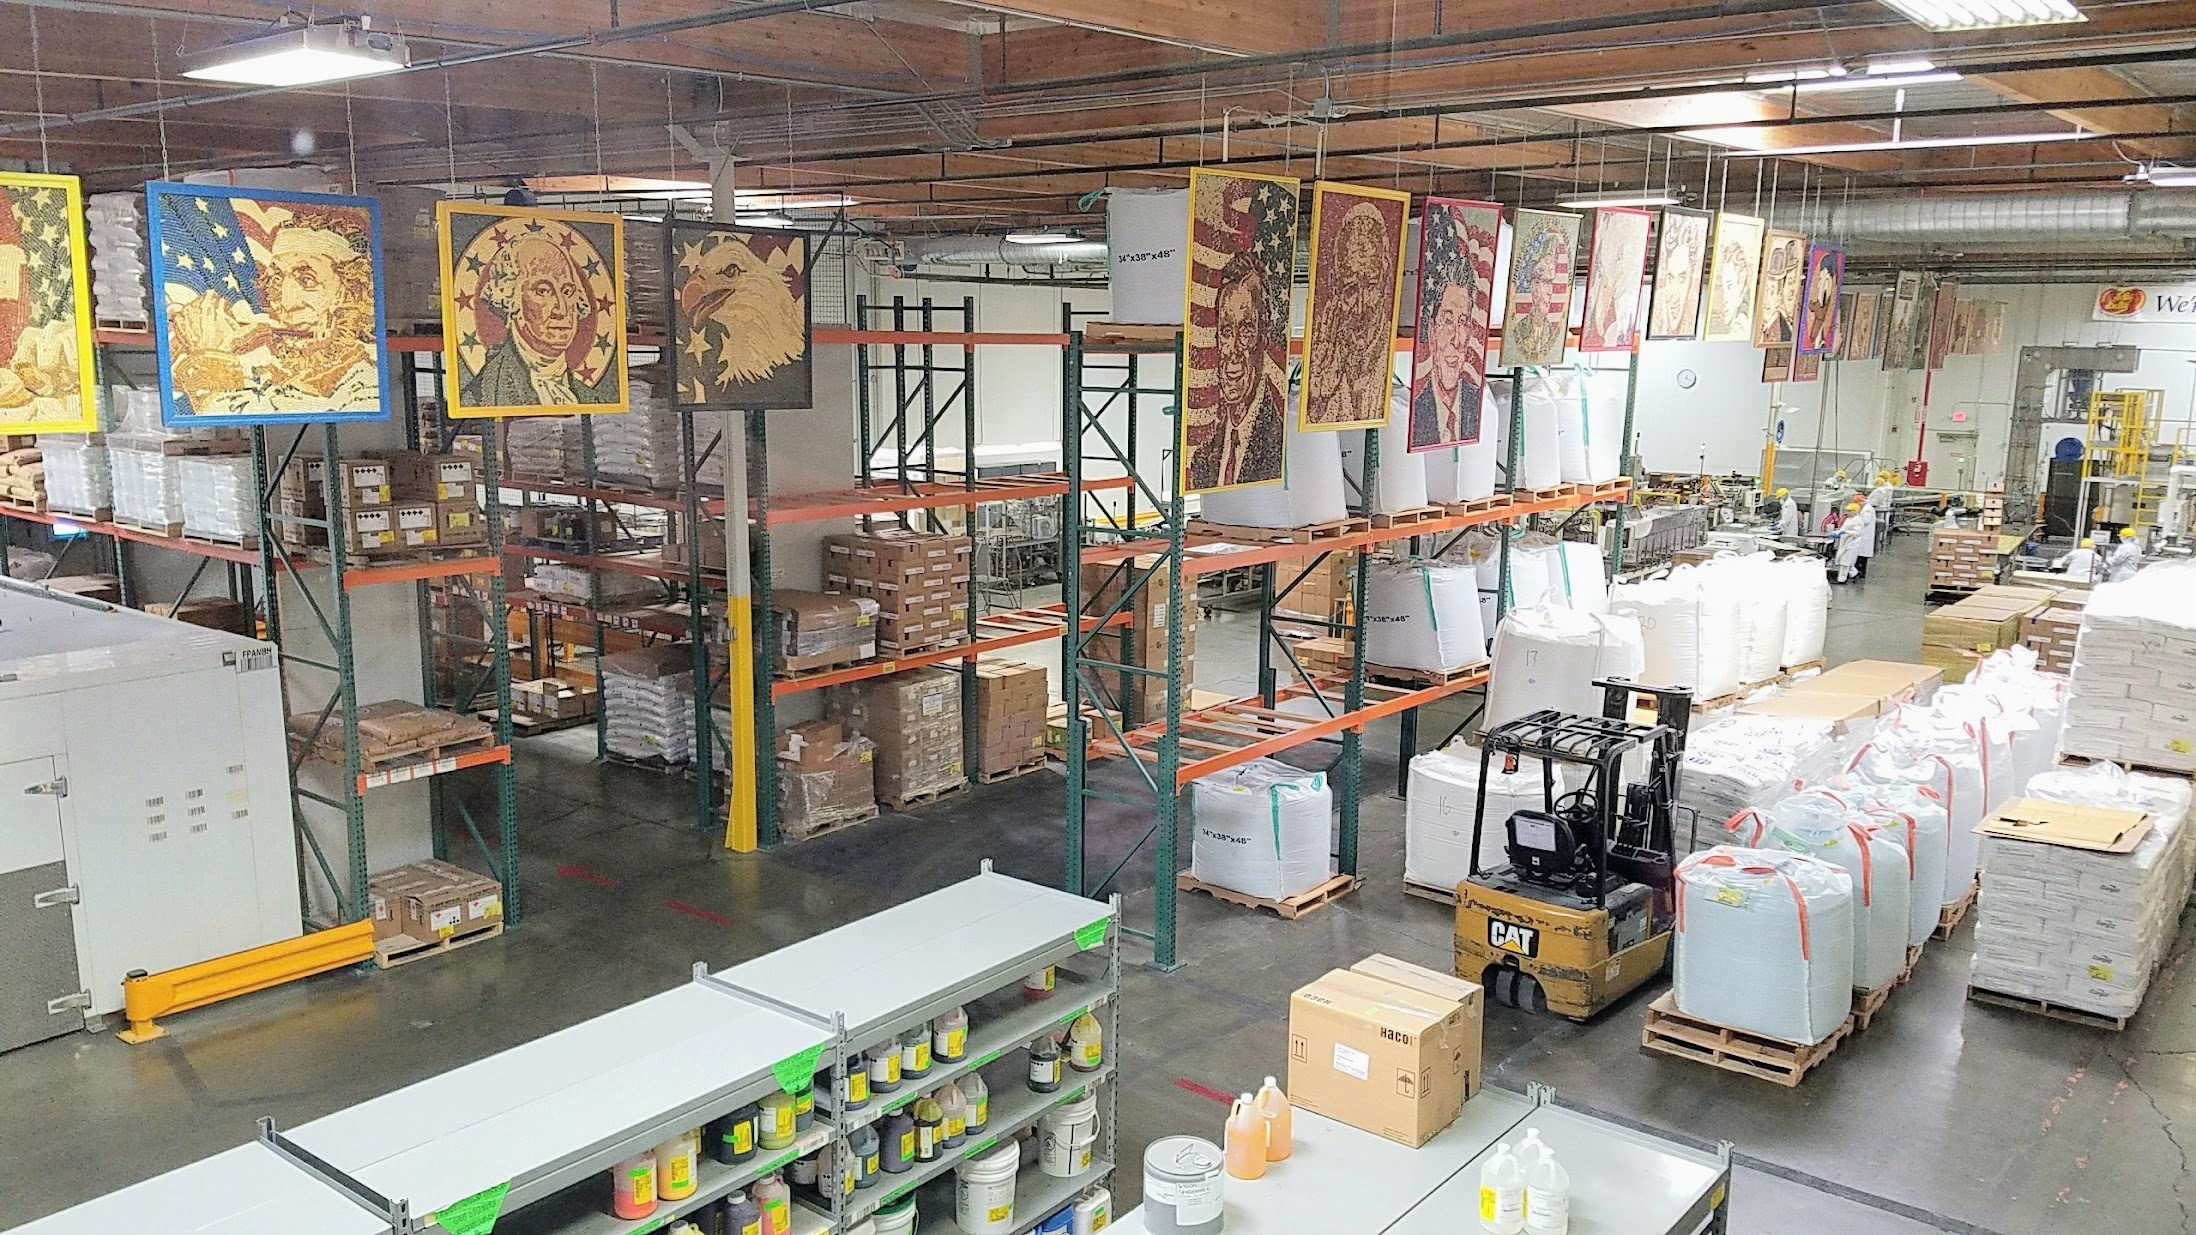 Inside the Jelly Belly Factory Tour in Fairfield, California